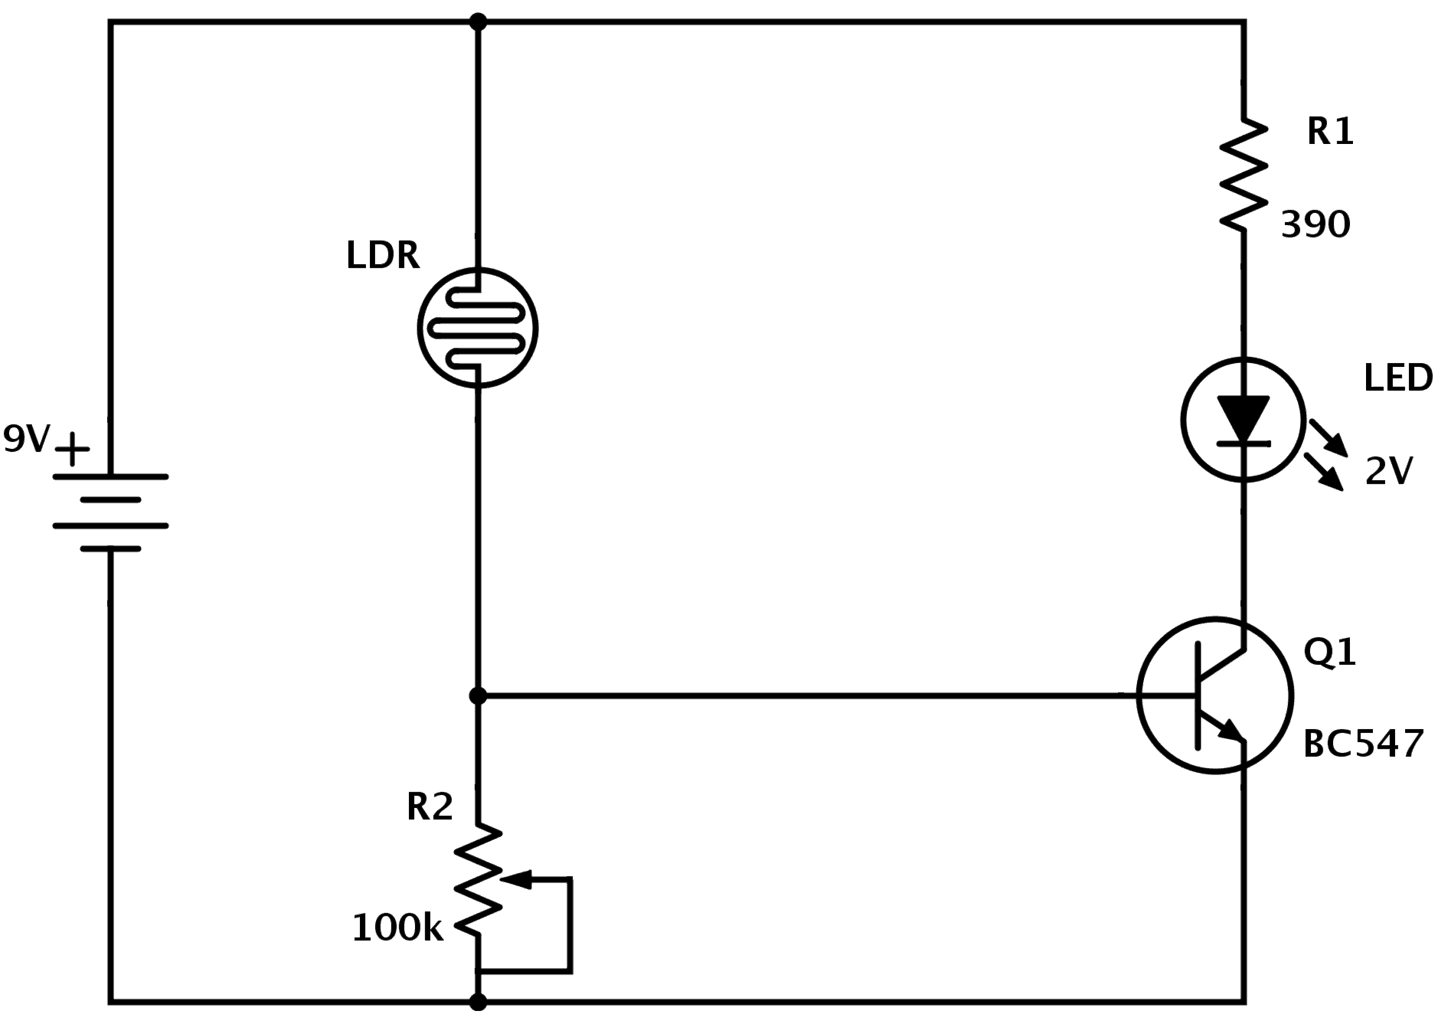 Ldr Circuit Diagram Build Electronic Circuits Wiring For Uv Light